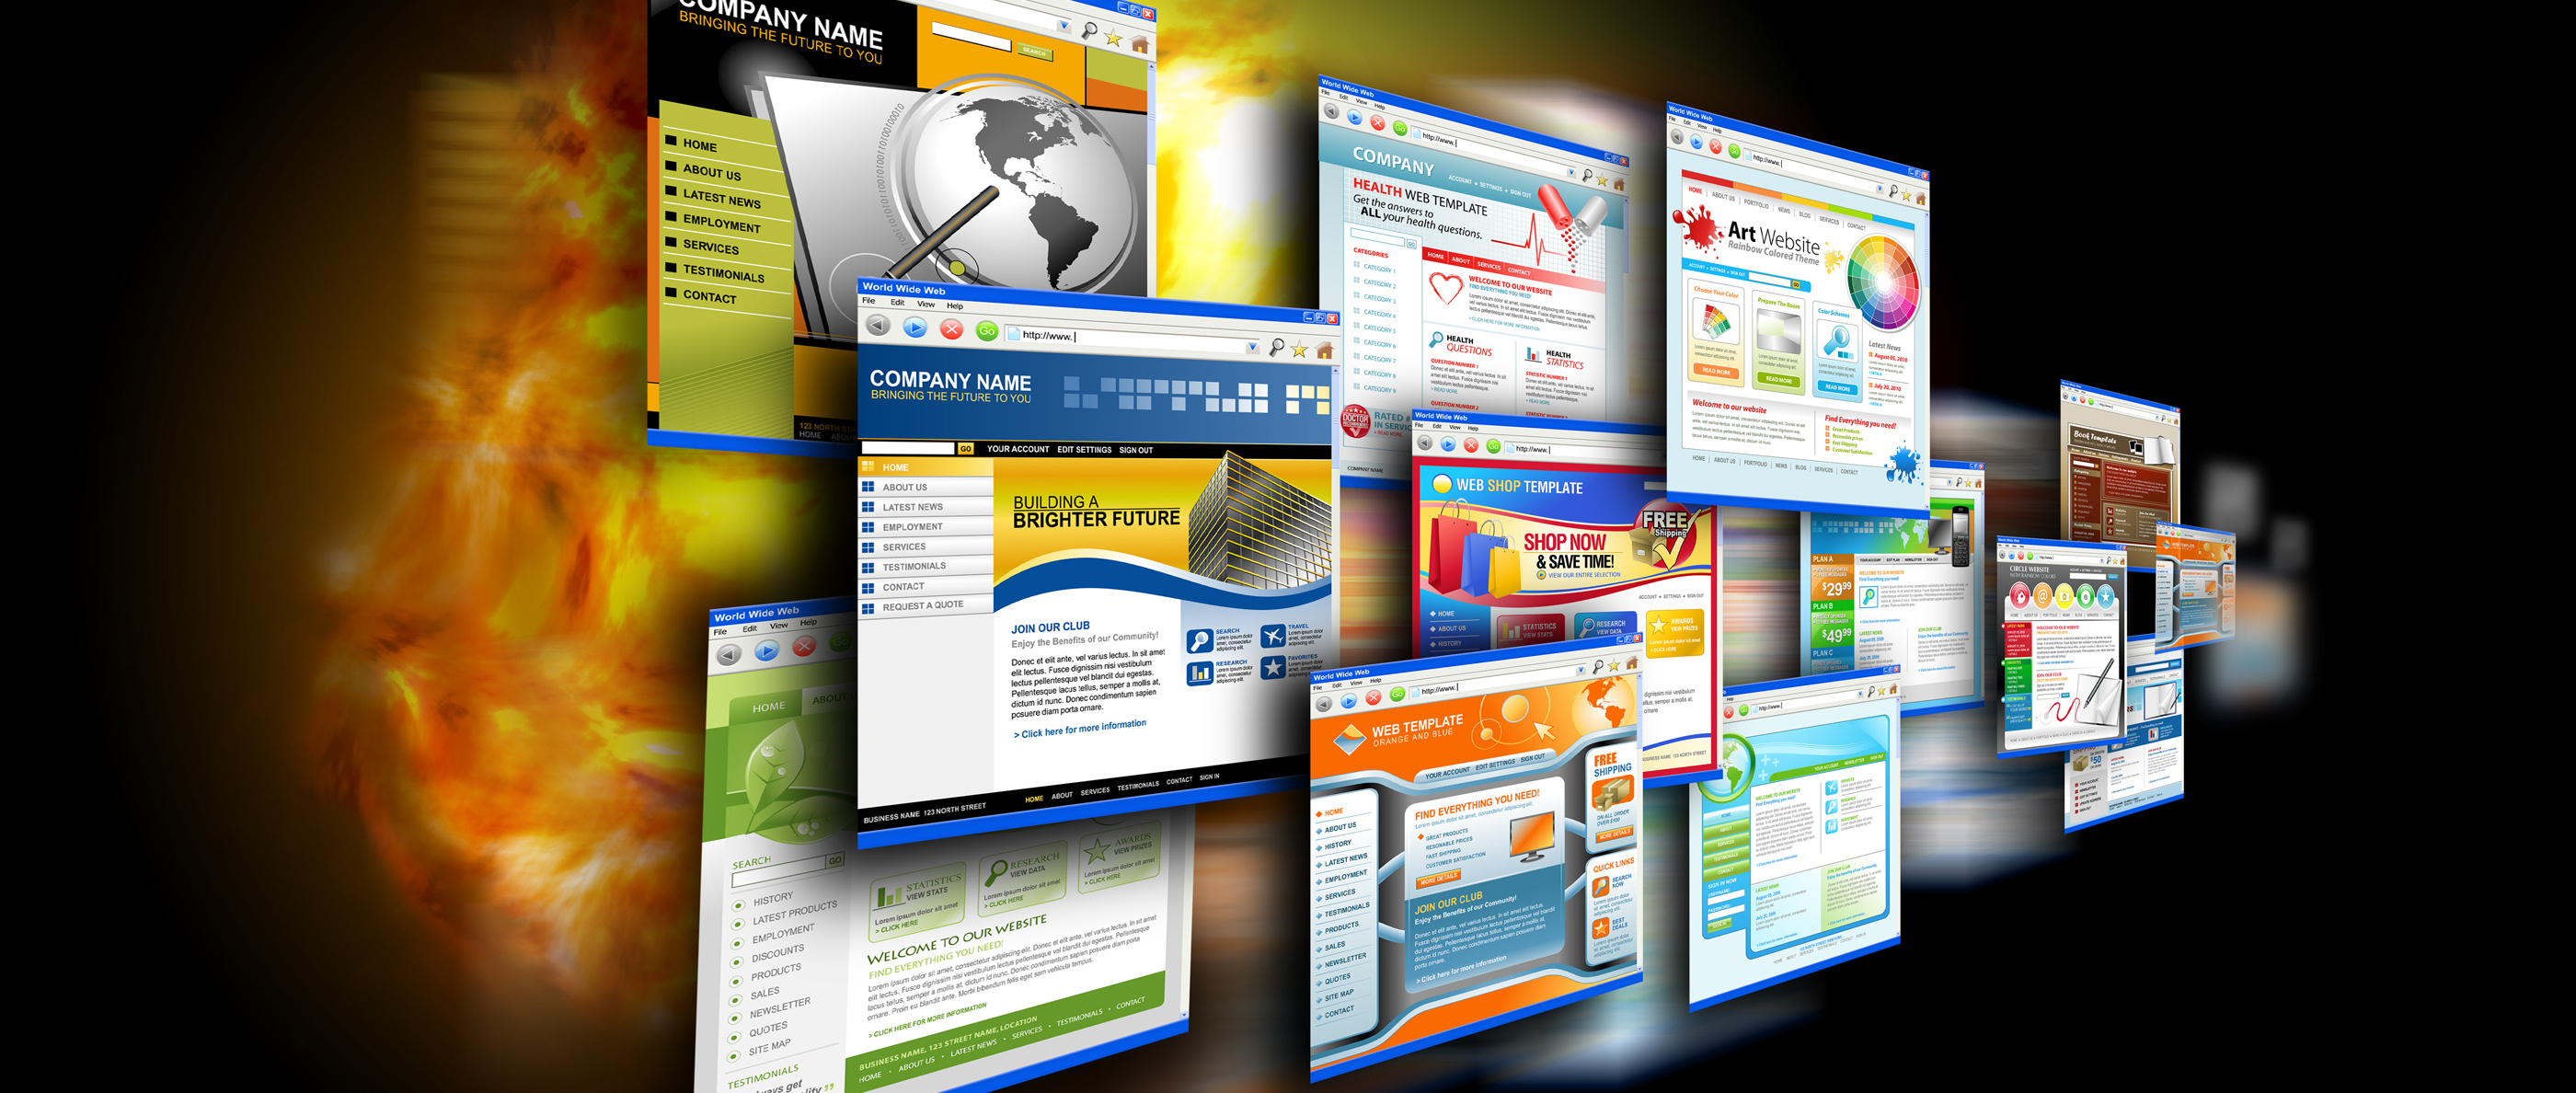 Publish your new website the right way